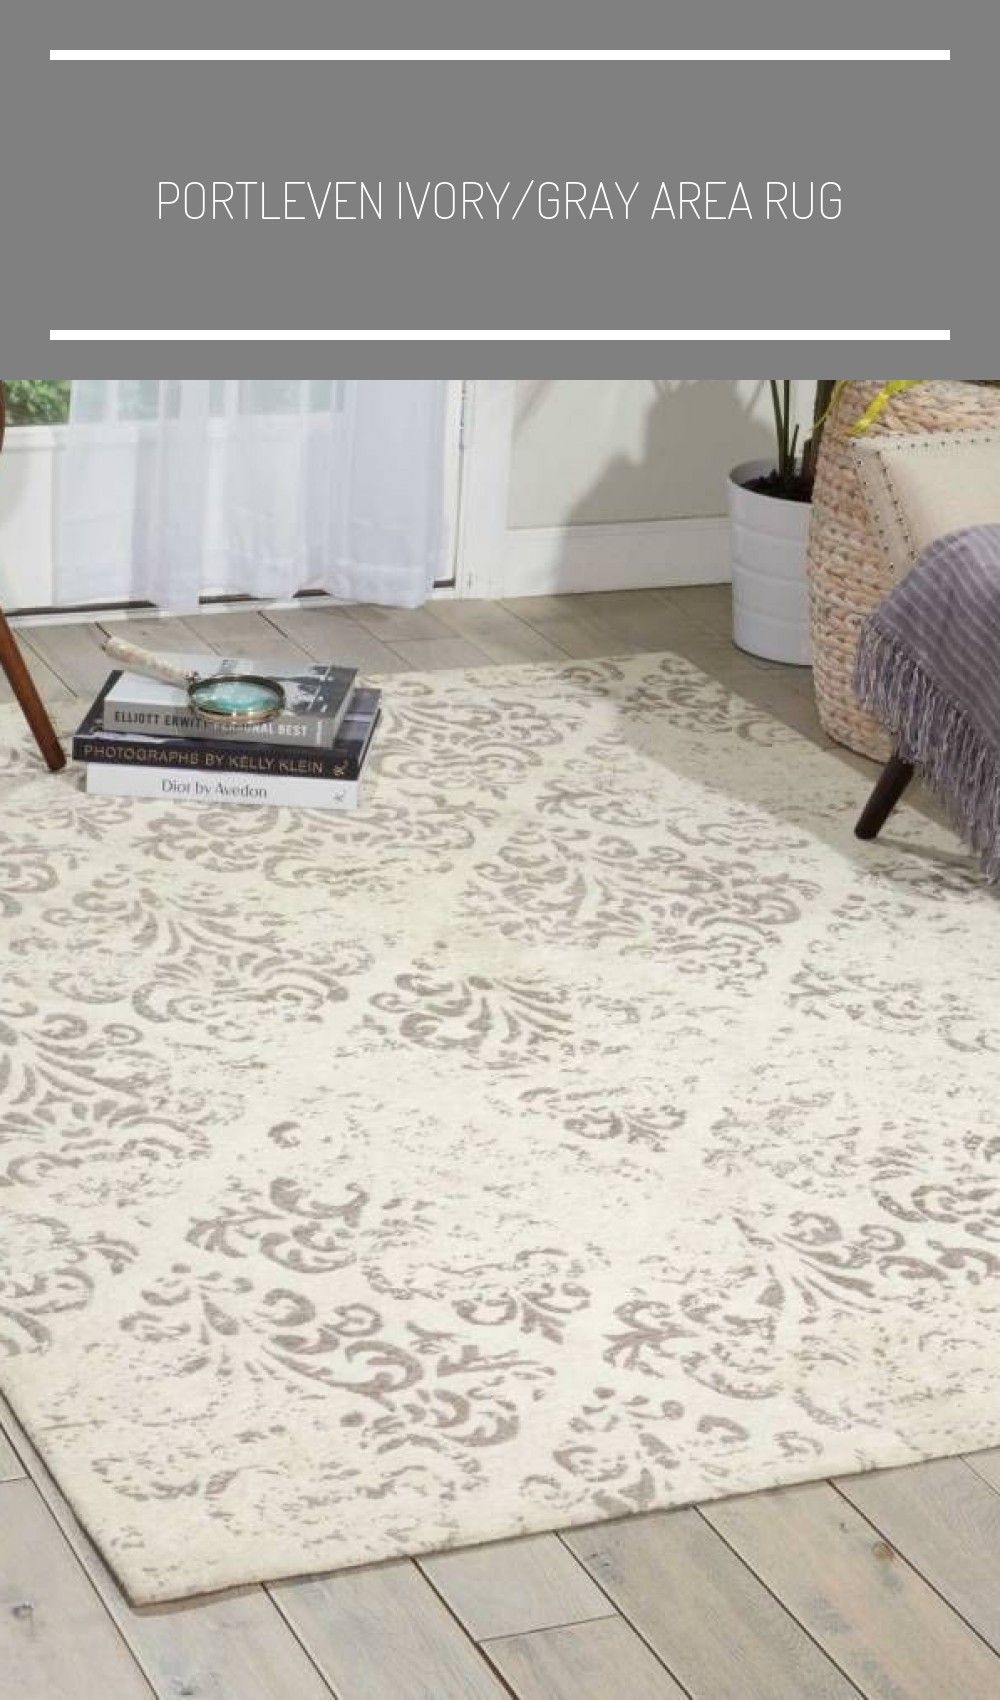 Carpet Stairs Lighting Portleven Ivory Gray Area Rug Carpet Stairs Grey Area Rug Stair Lighting